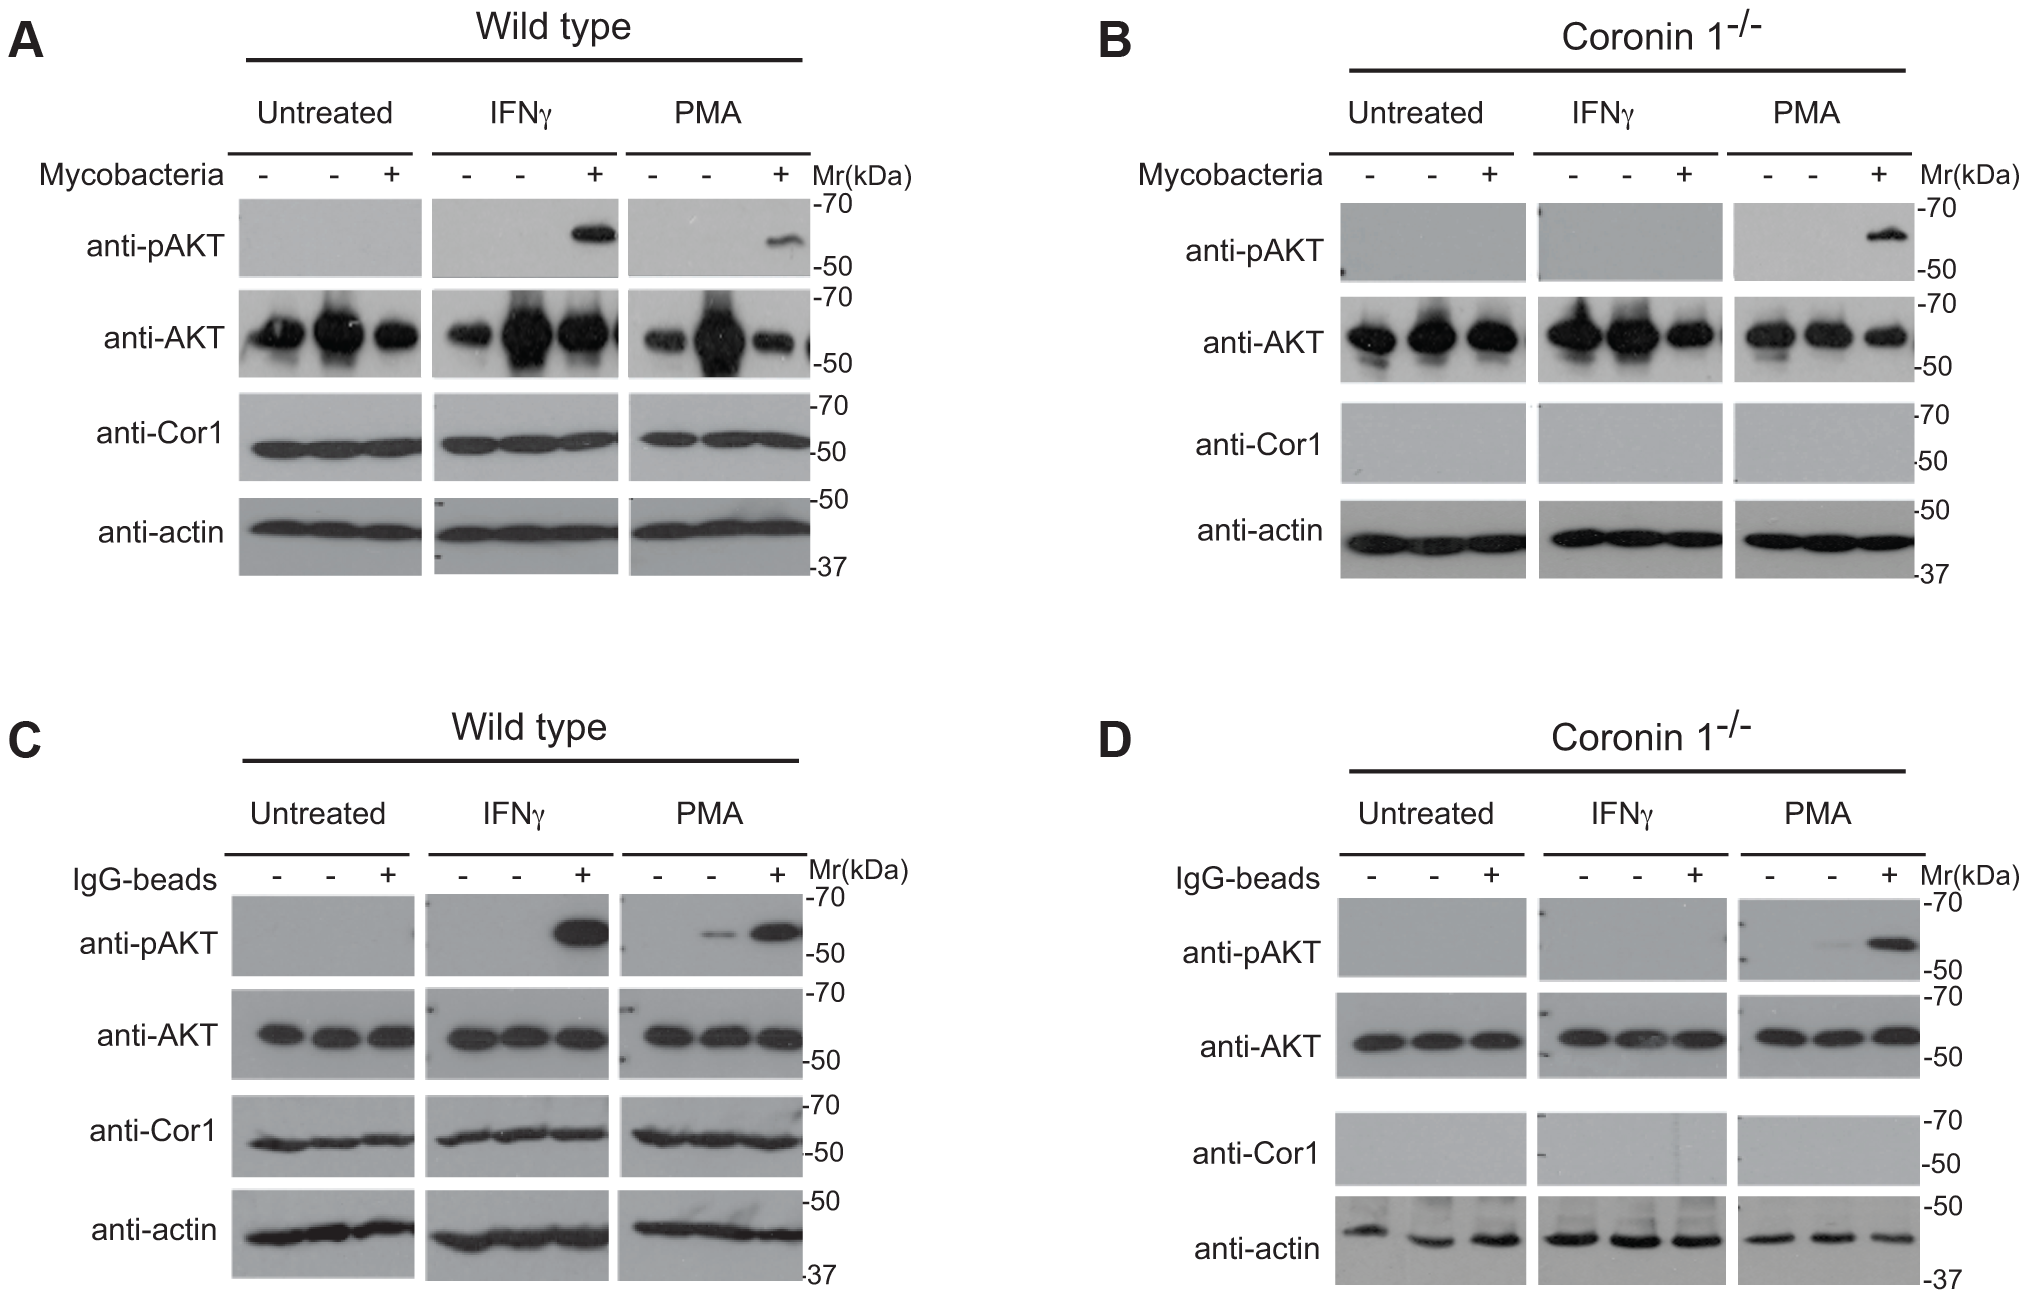 Induction of PI 3 kinase activity in the presence and absence of coronin 1.